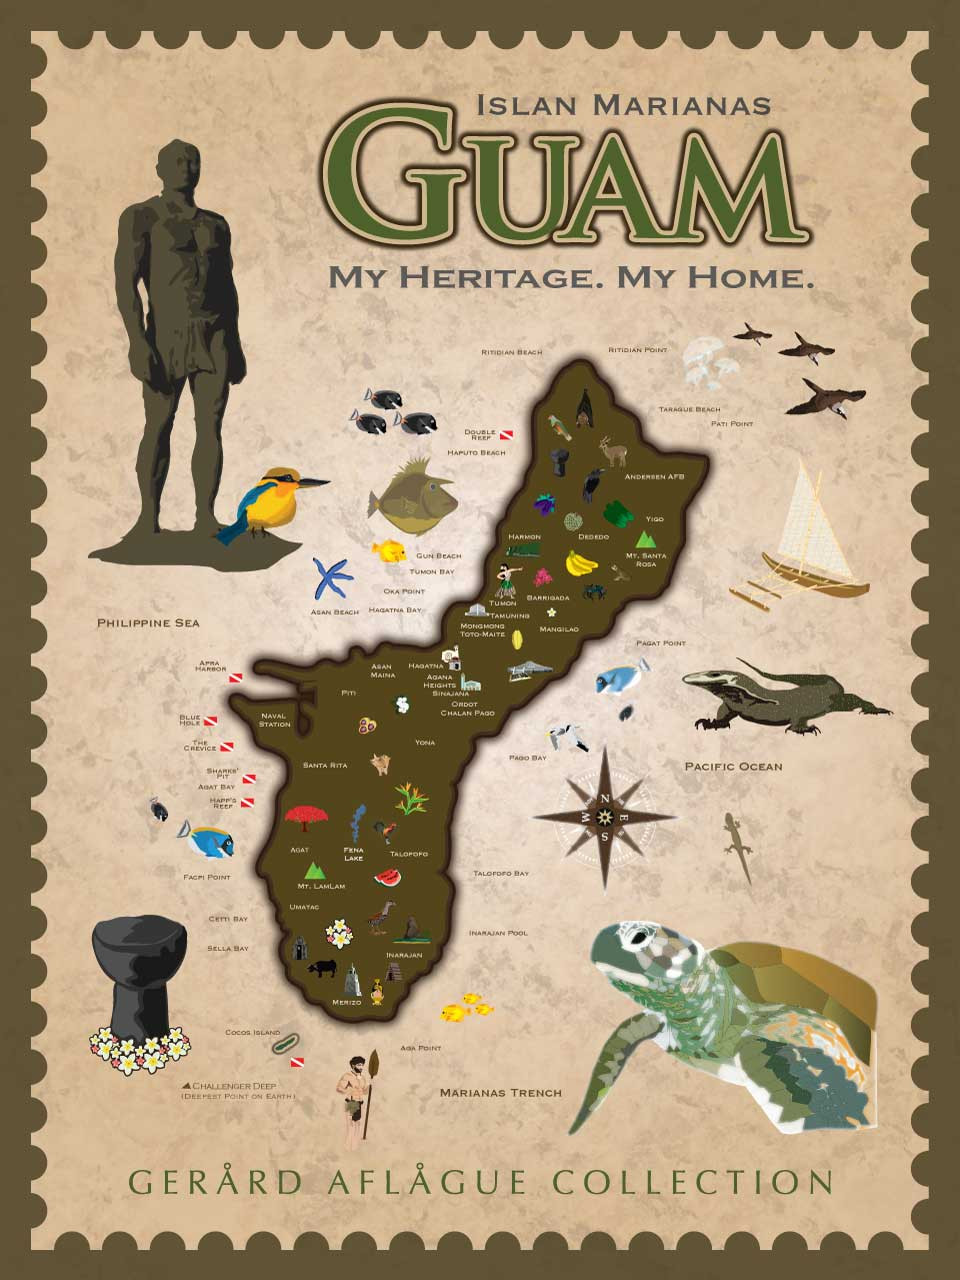 My Heritage My Home Cultural Guam Map Poster